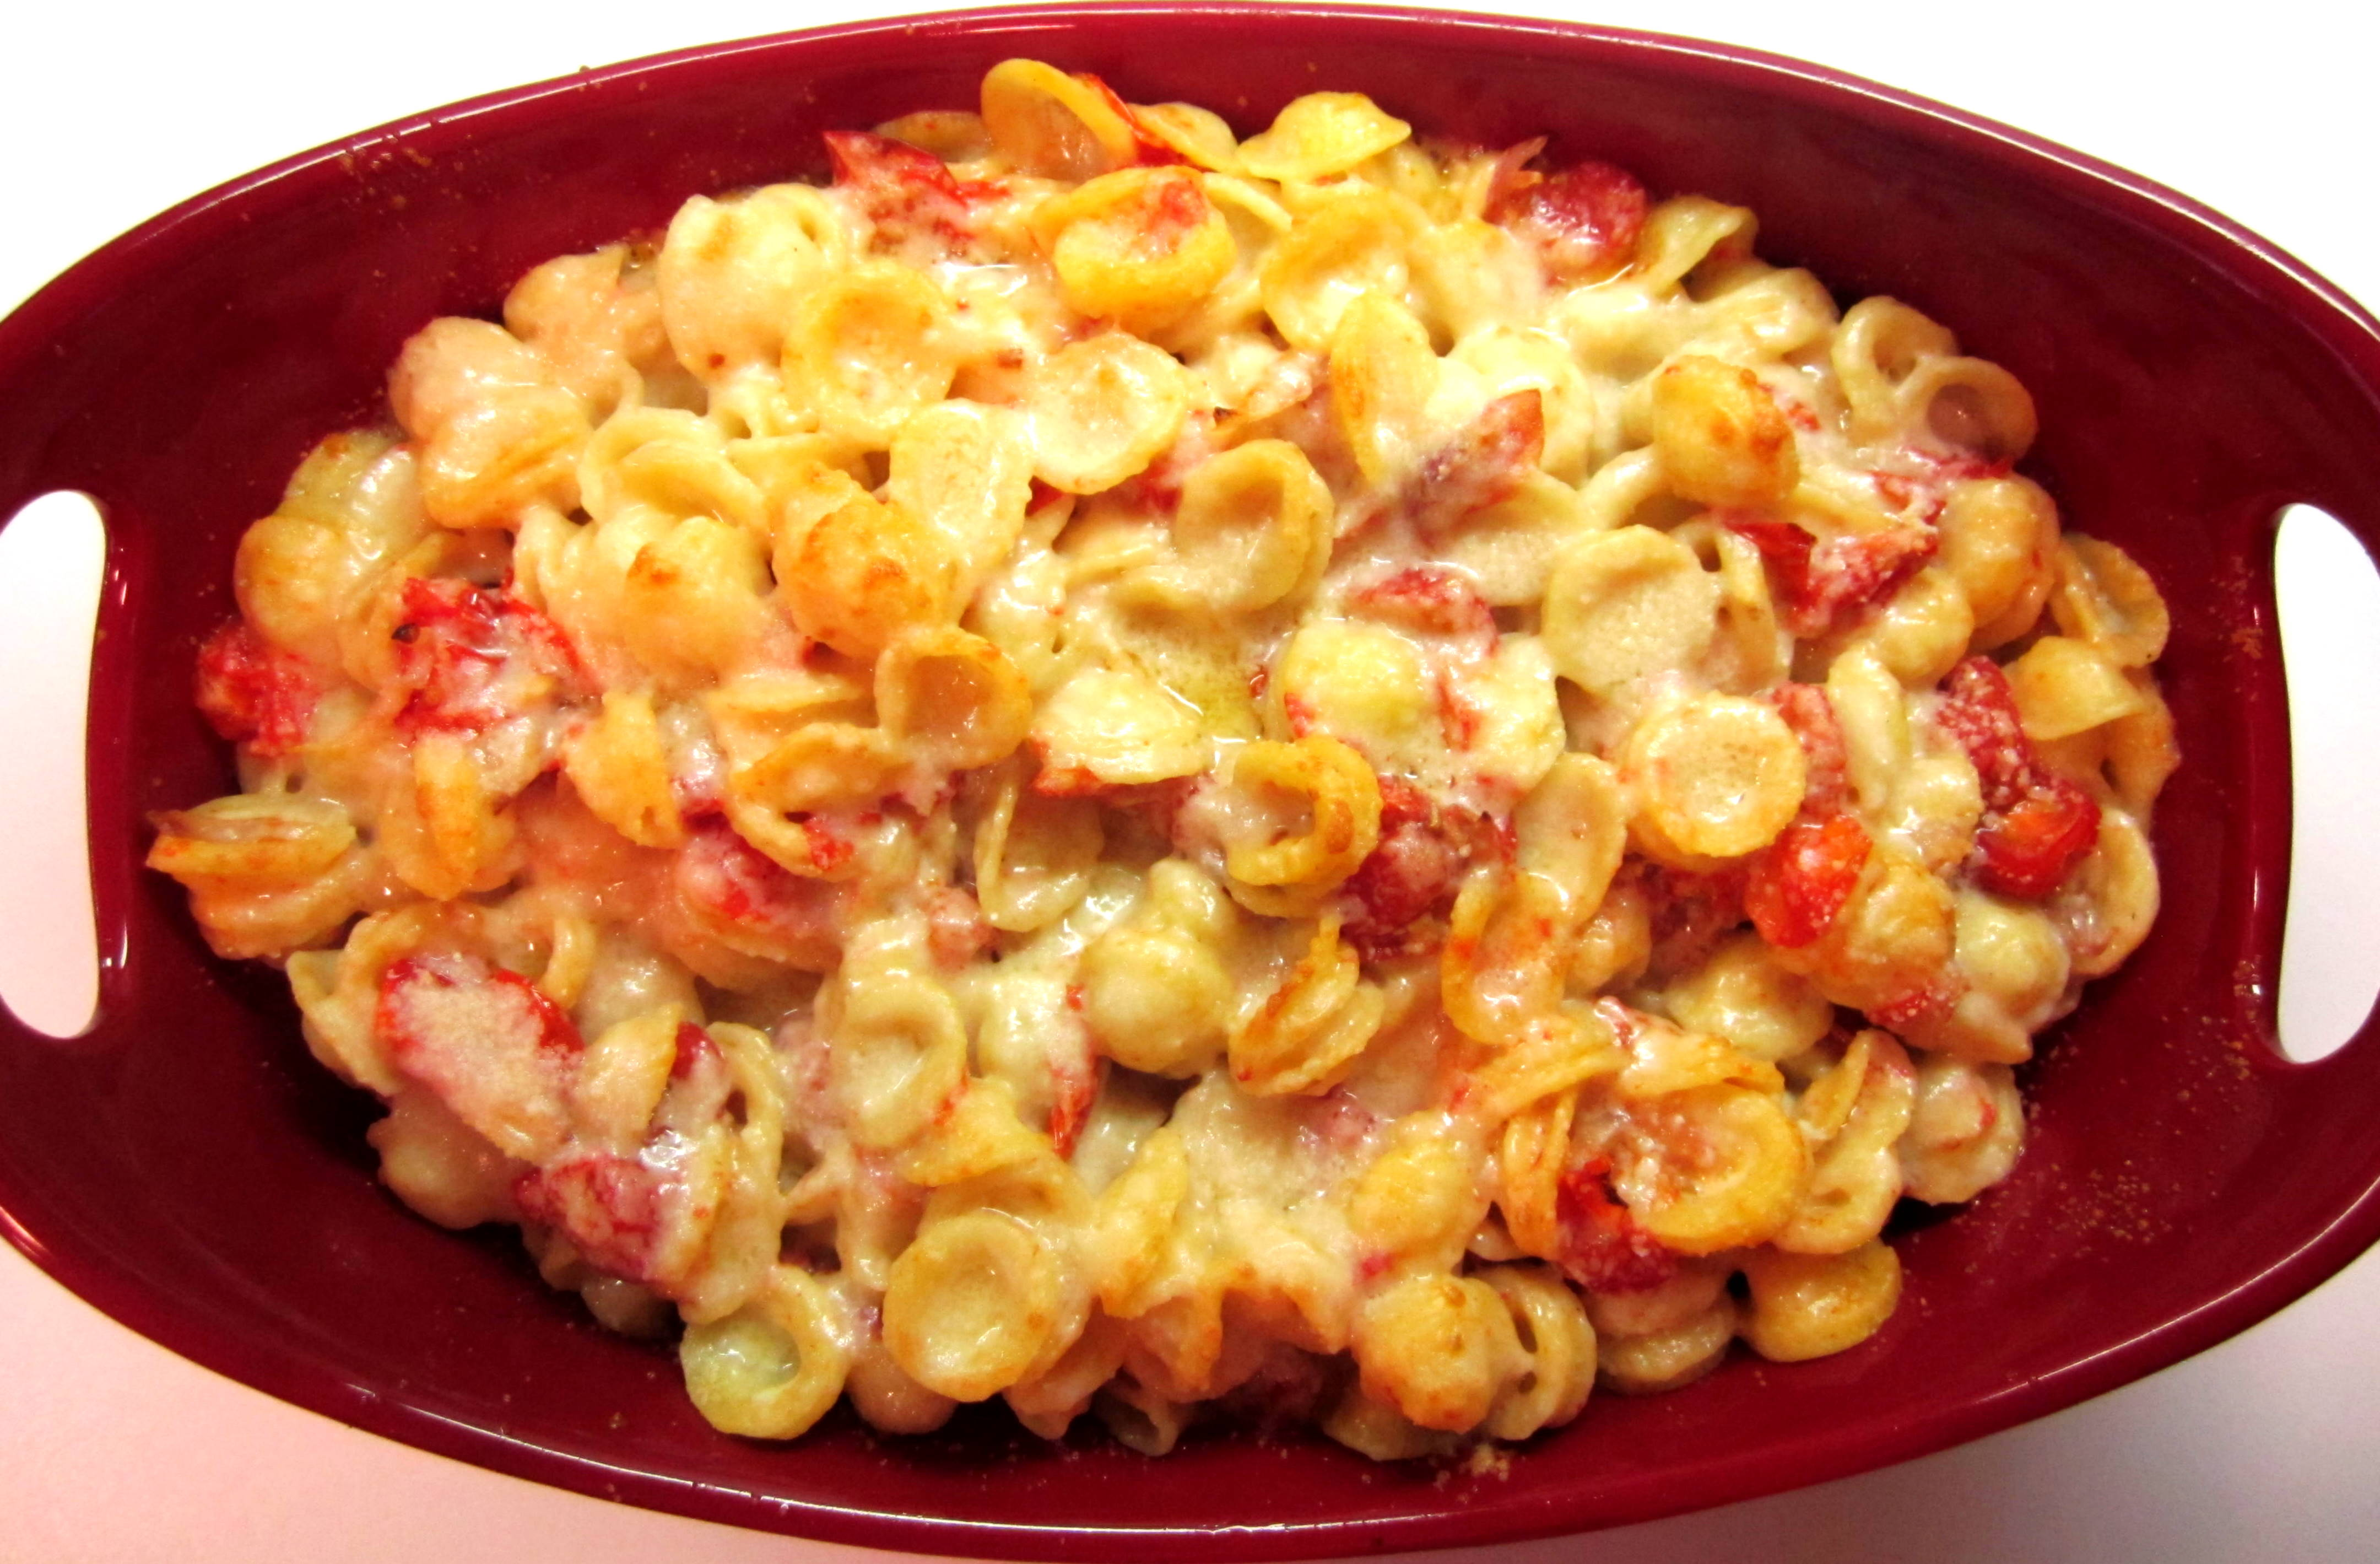 Baked Pasta With Tomatoes And Parmesan Recipe — Dishmaps